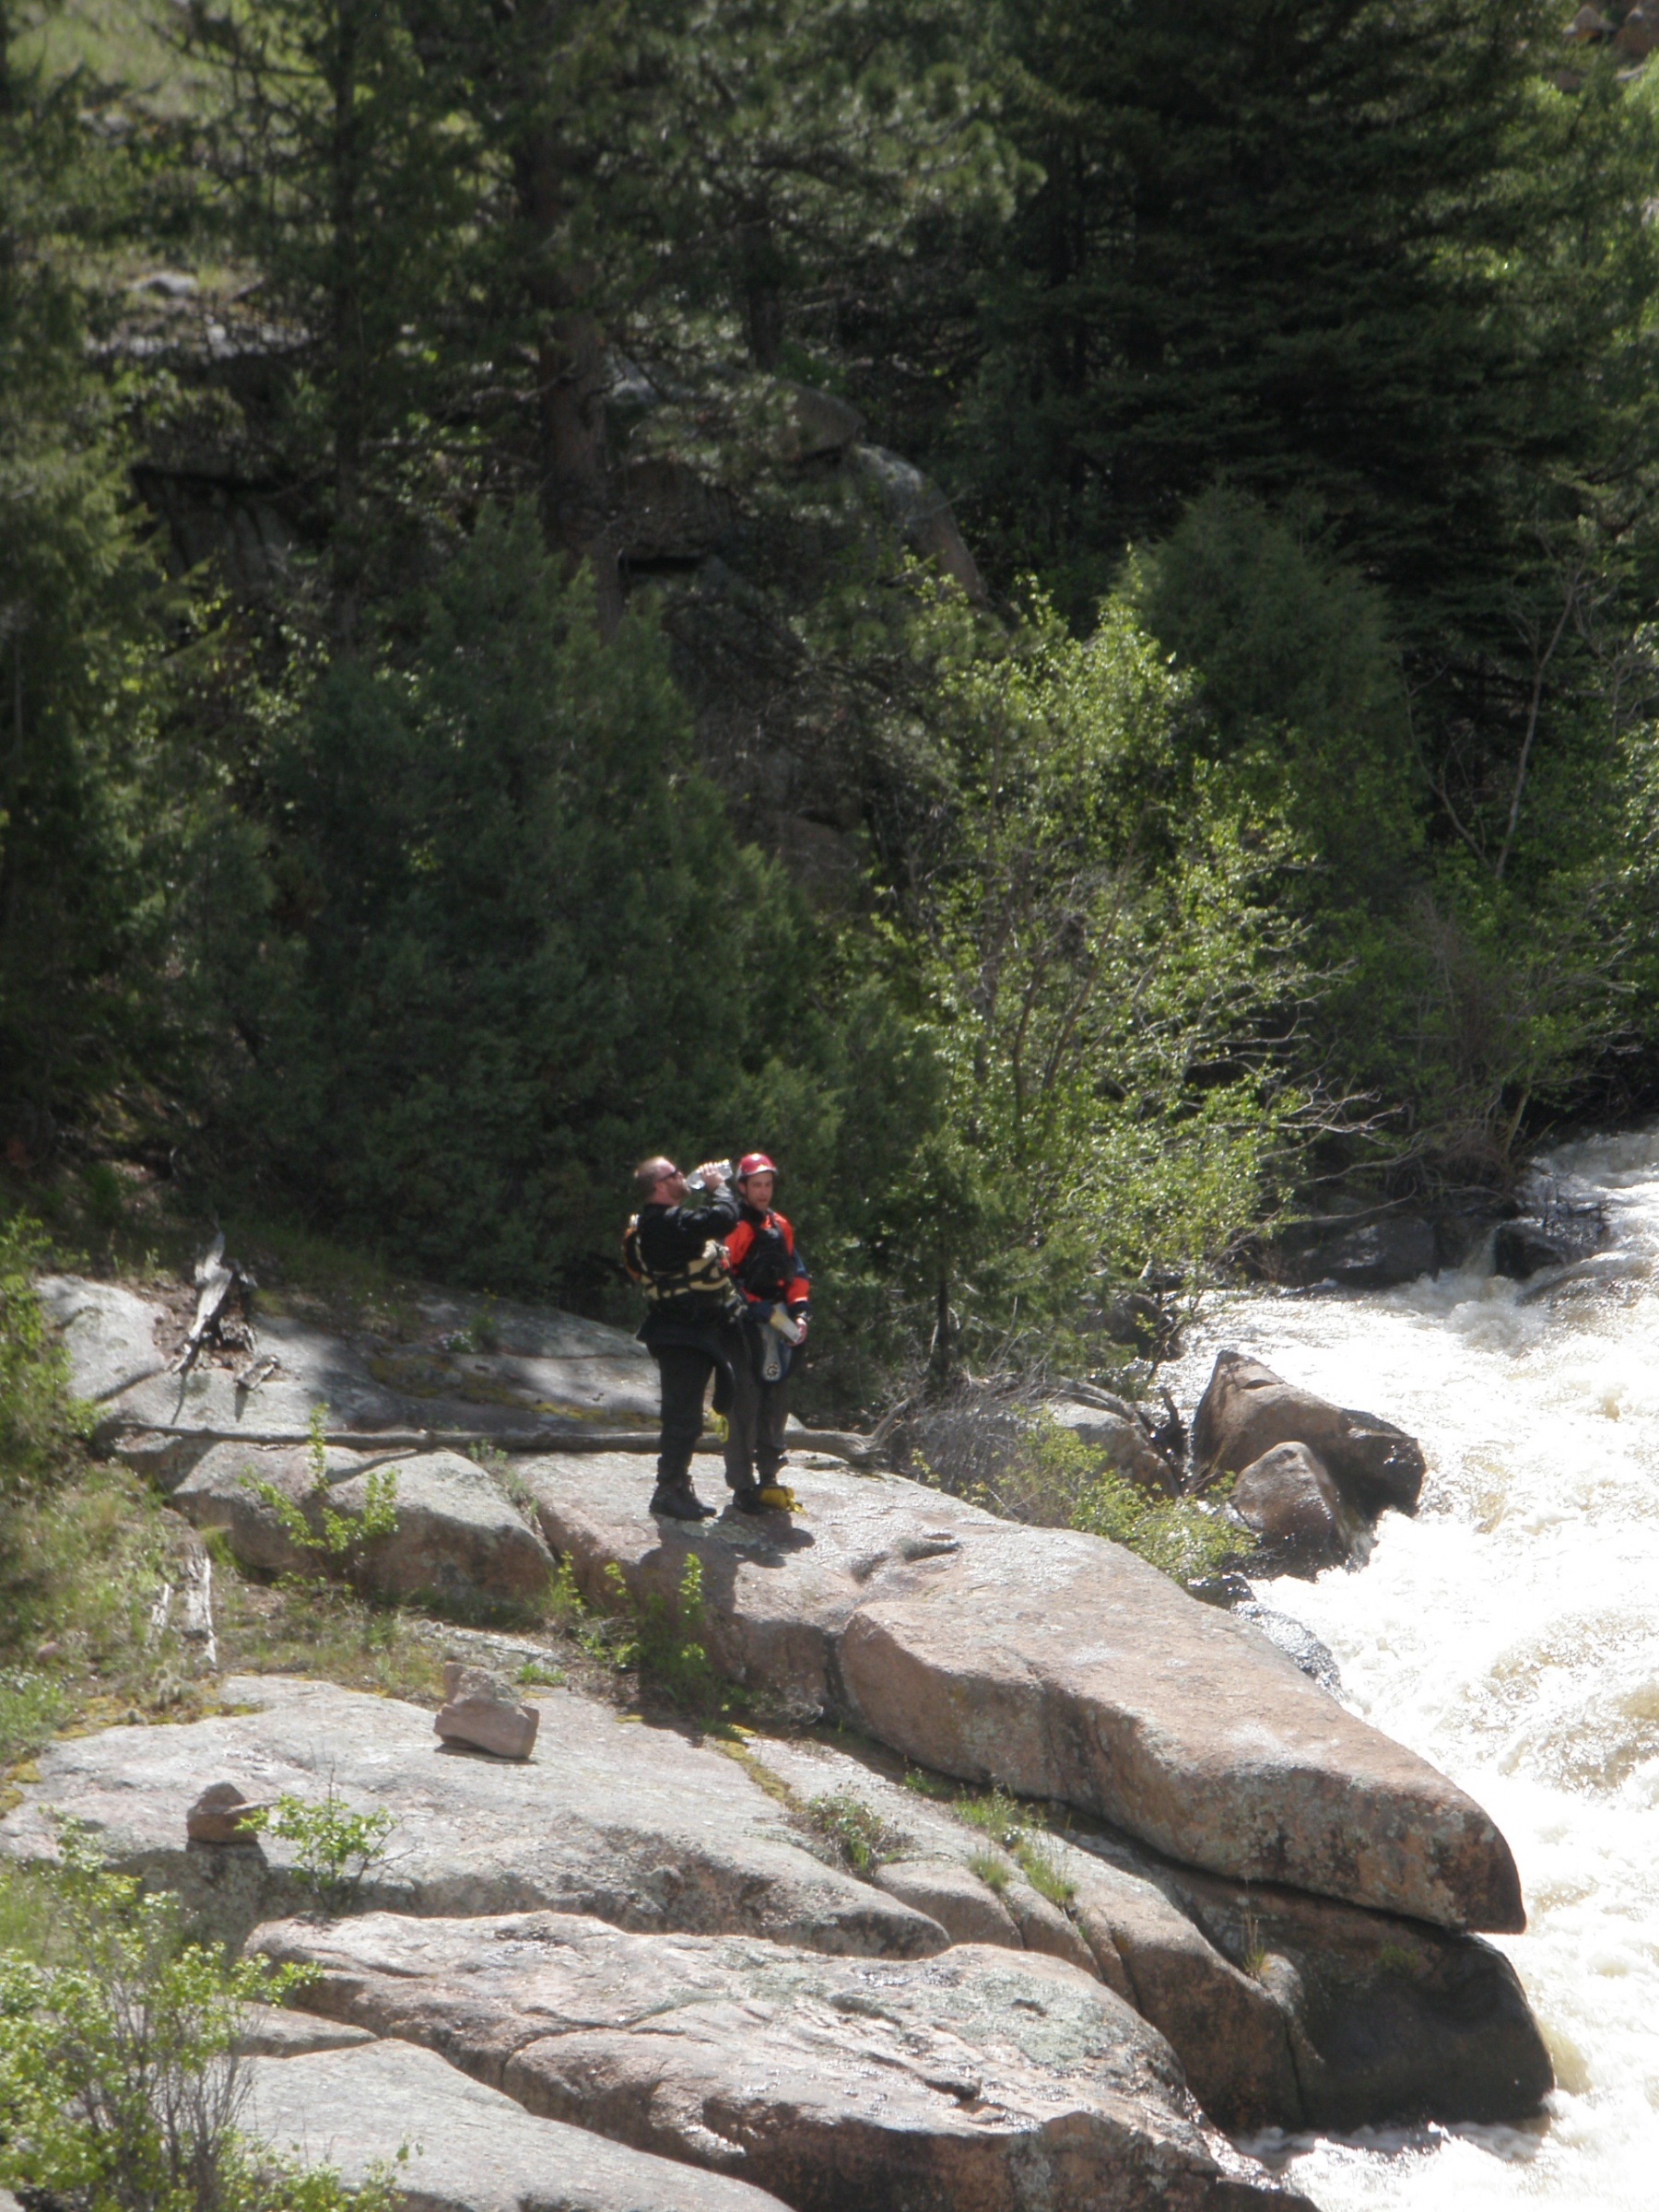 Click image for larger version  Name:upper north fork poudre 015.jpg Views:102 Size:1.24 MB ID:9994